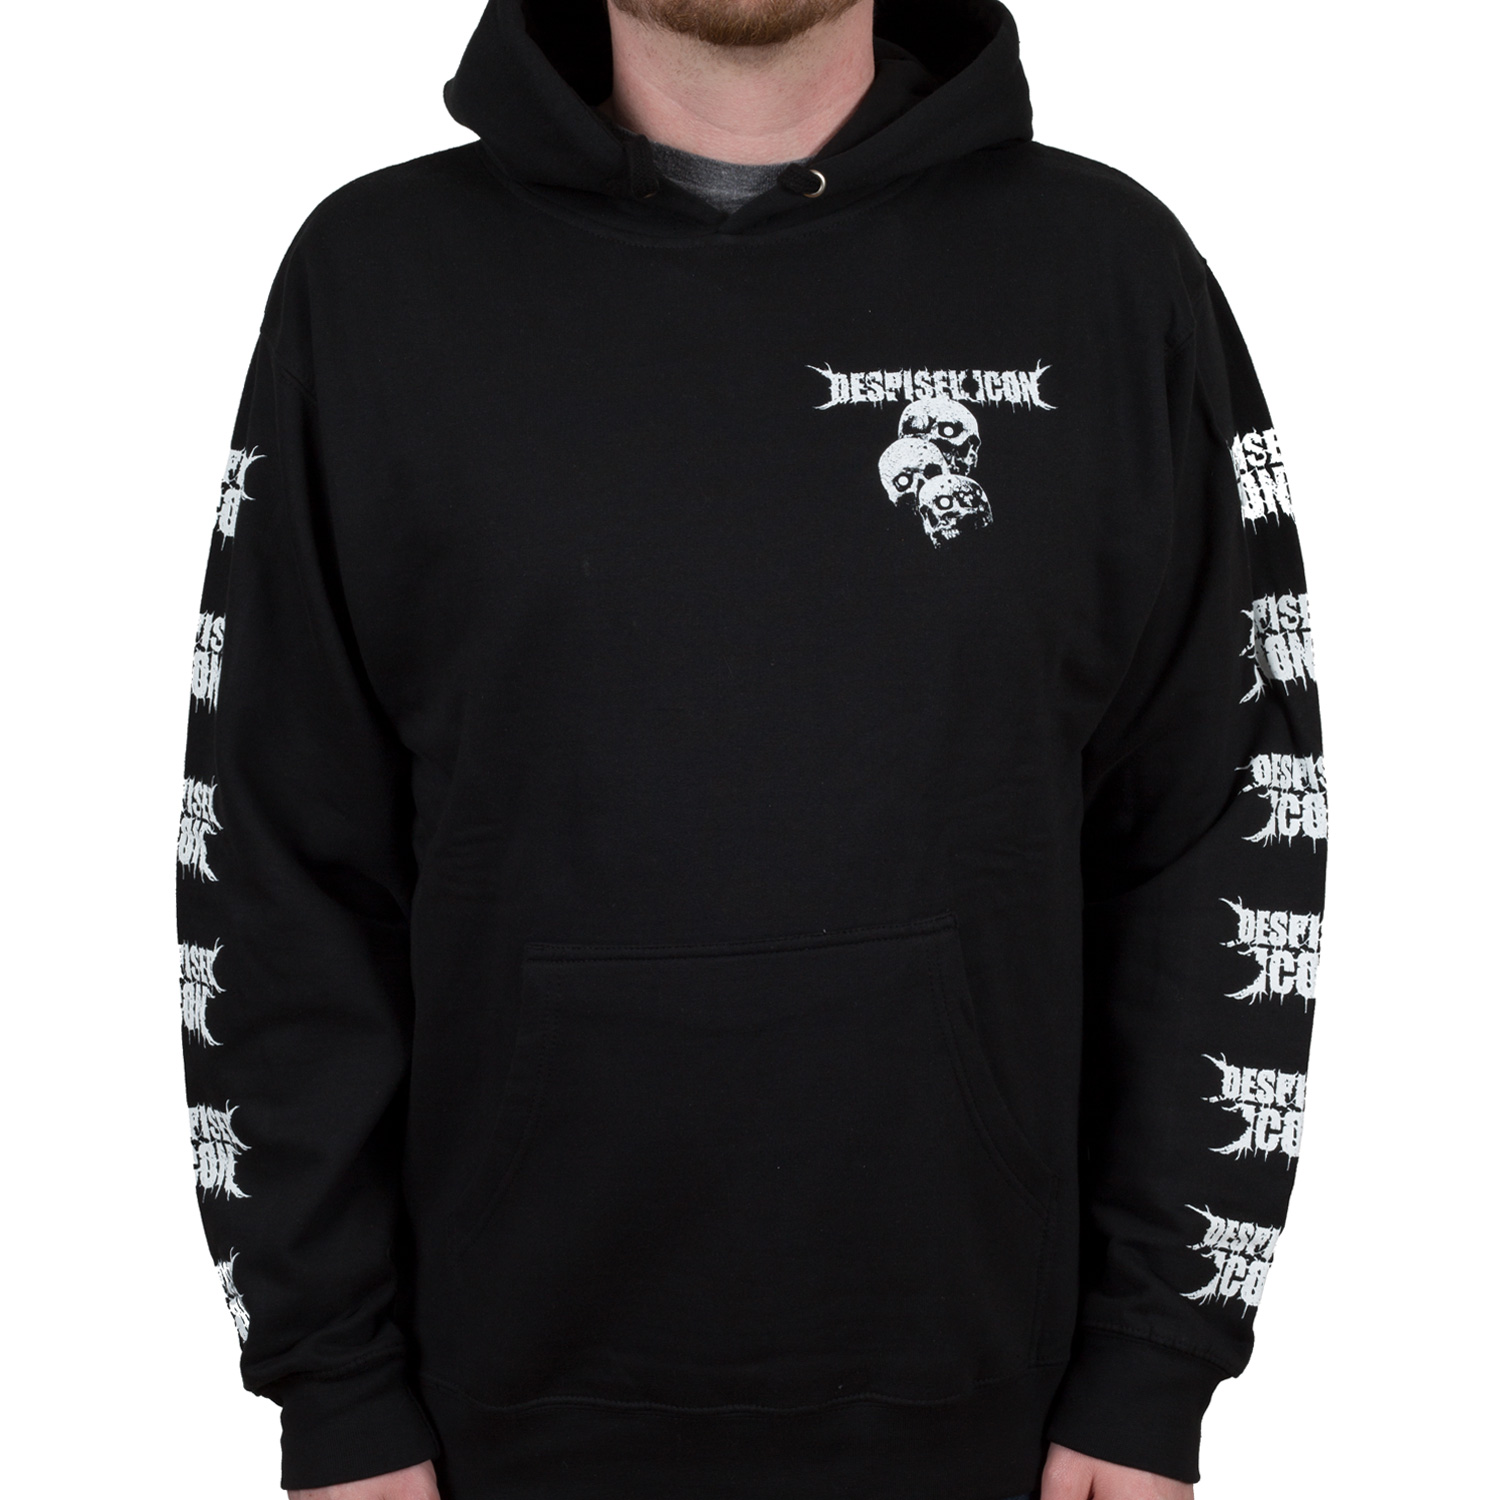 Rancid hoodies